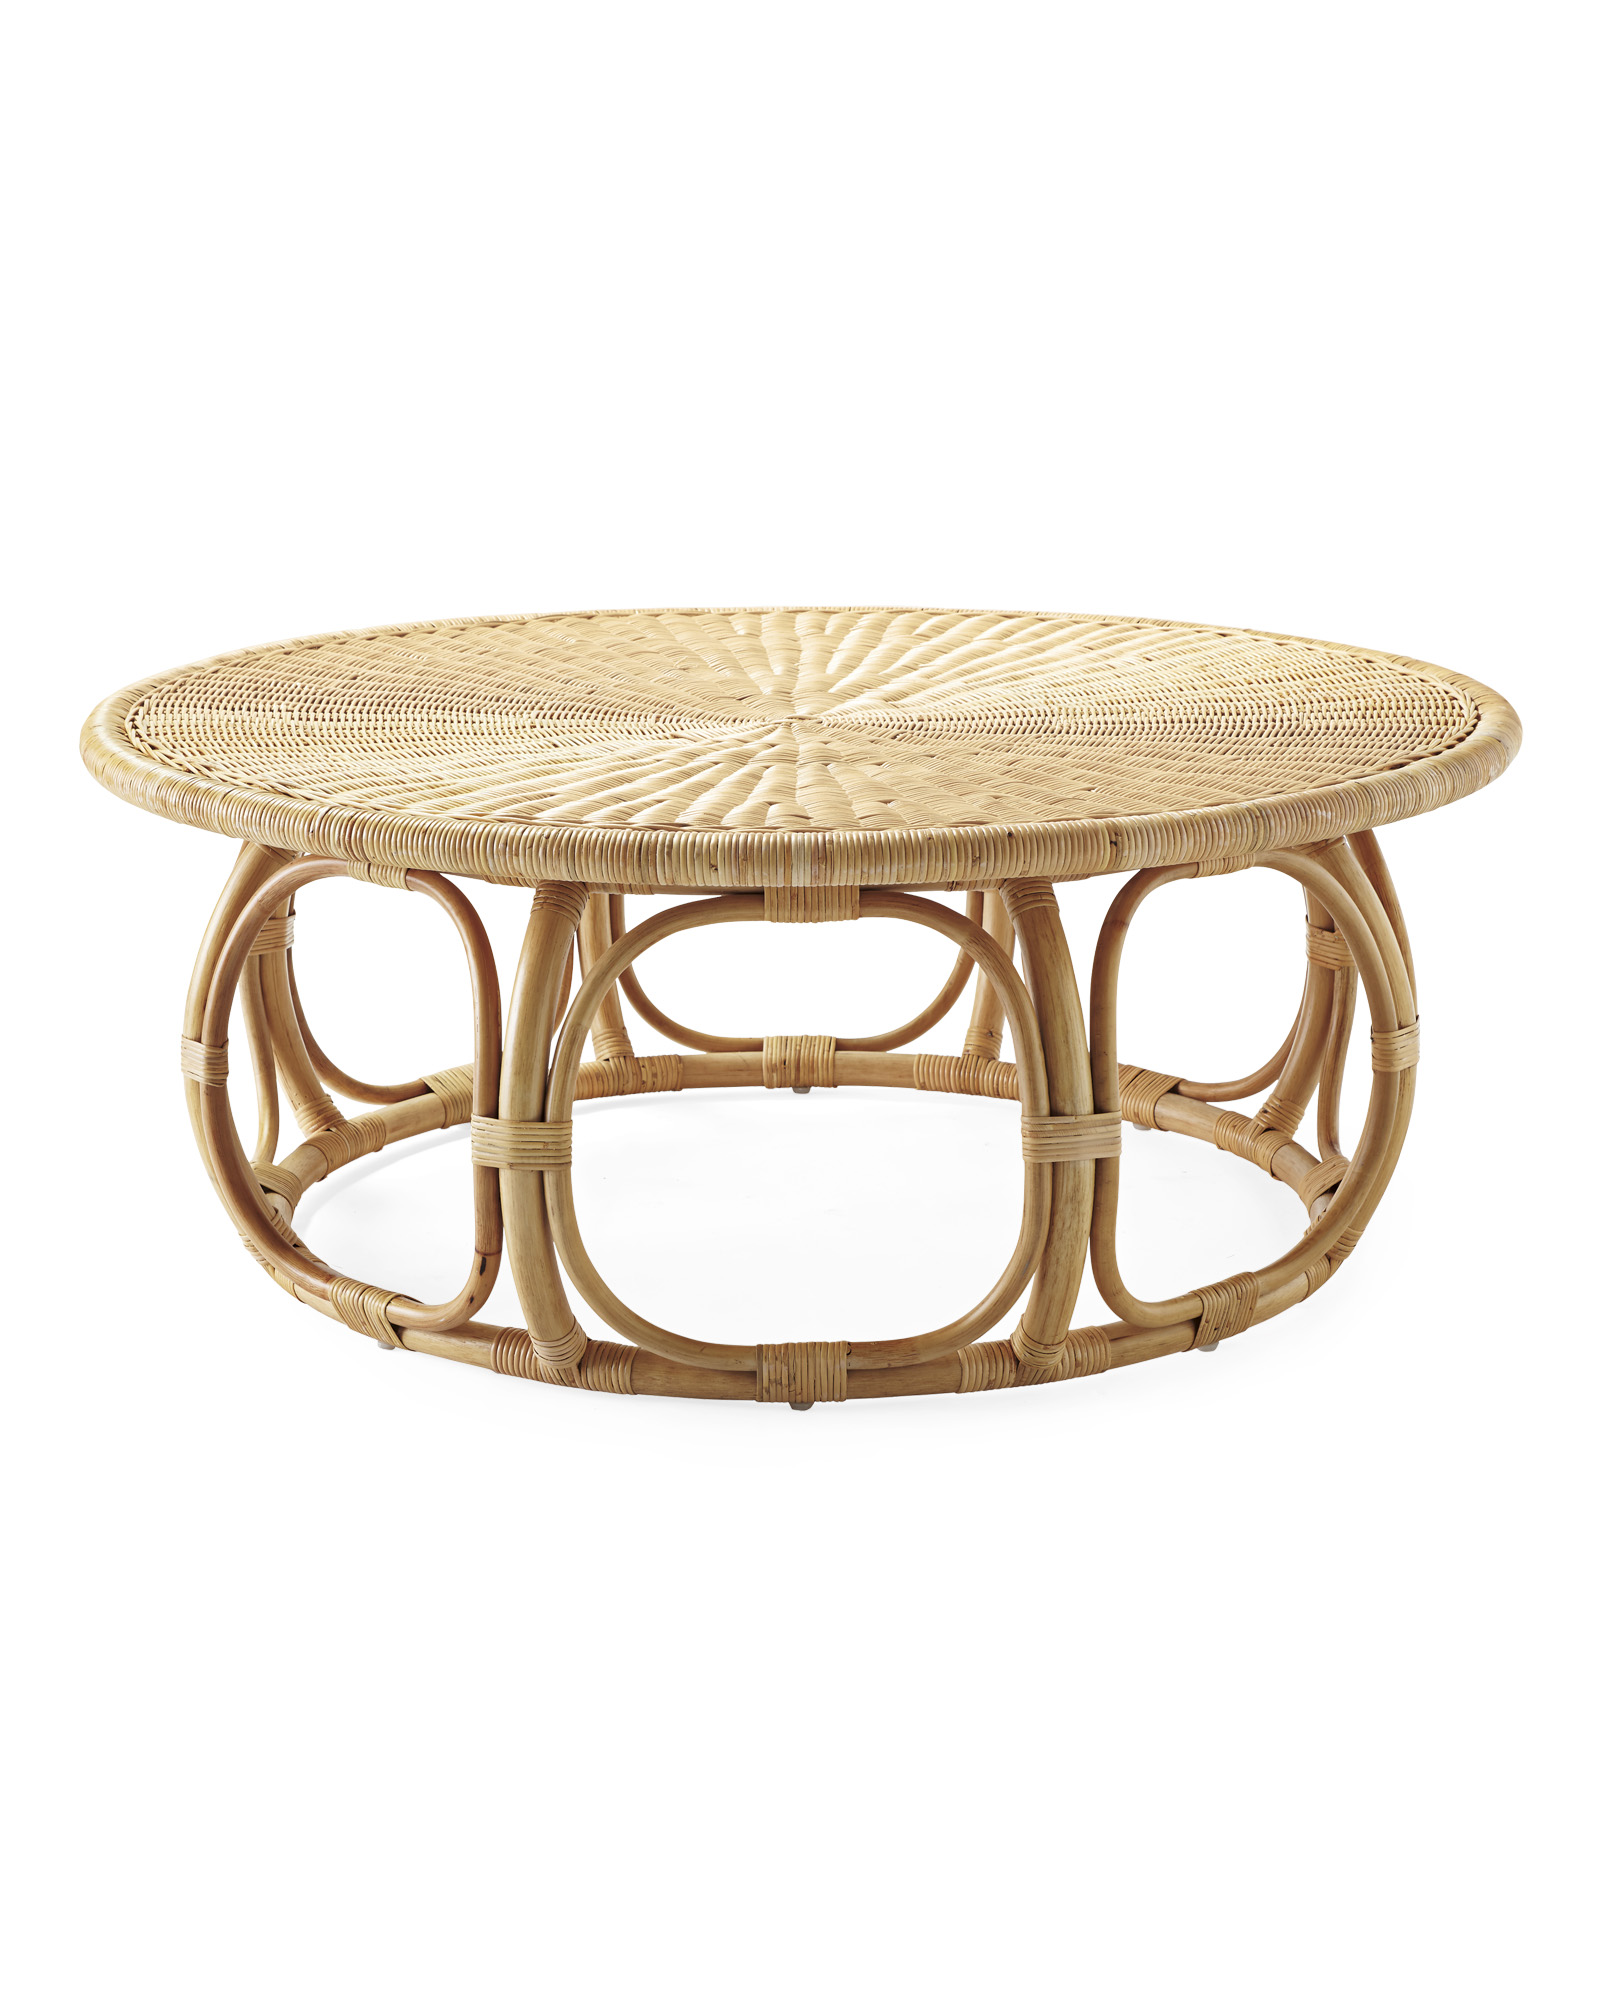 Furn_Coffee_Table_Anguilla_Round_MV_Crop_SH.jpg